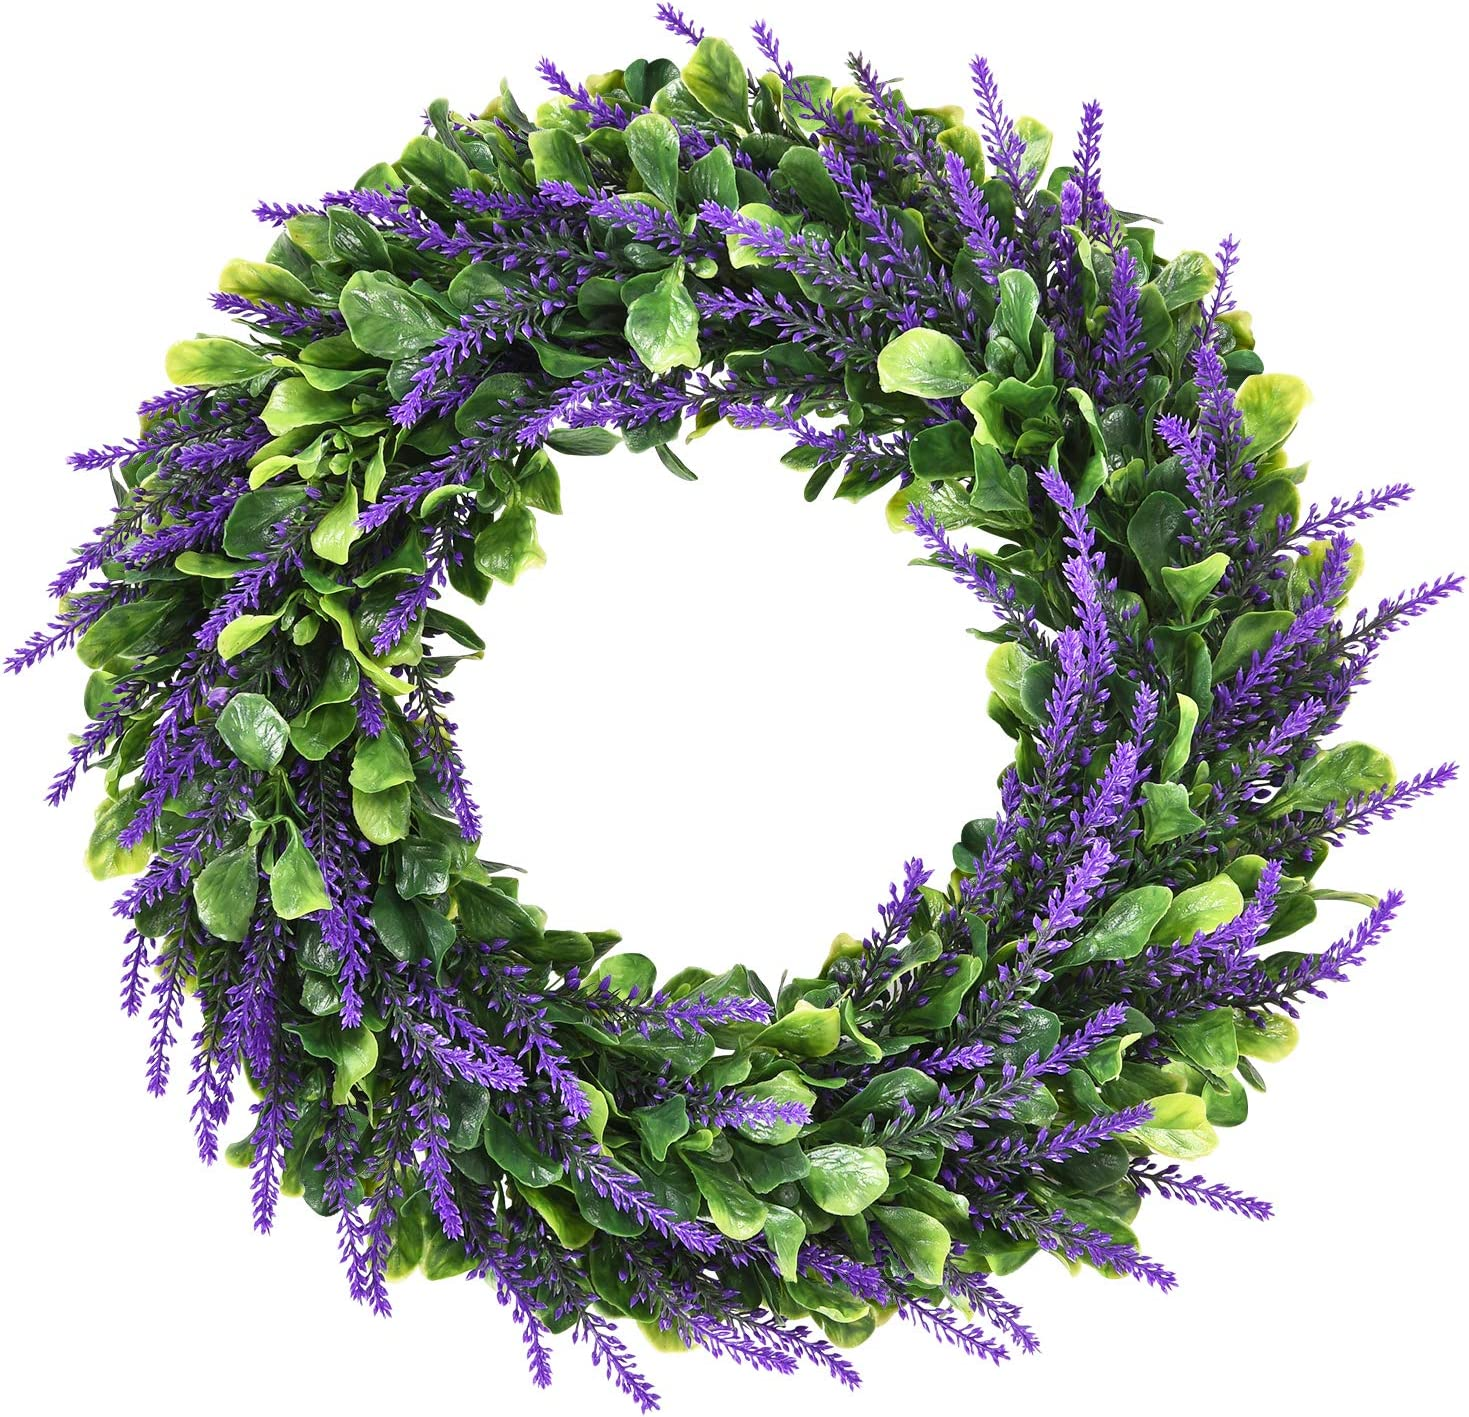 Dolicer Artificial Lavender Wreath, Green Leaves Boxwood Wreath with Lavender Wreath Flowers Arrangements Lavender Spring Wreath for Garden Office Wedding Party Wall Table Home Decor,16.5''